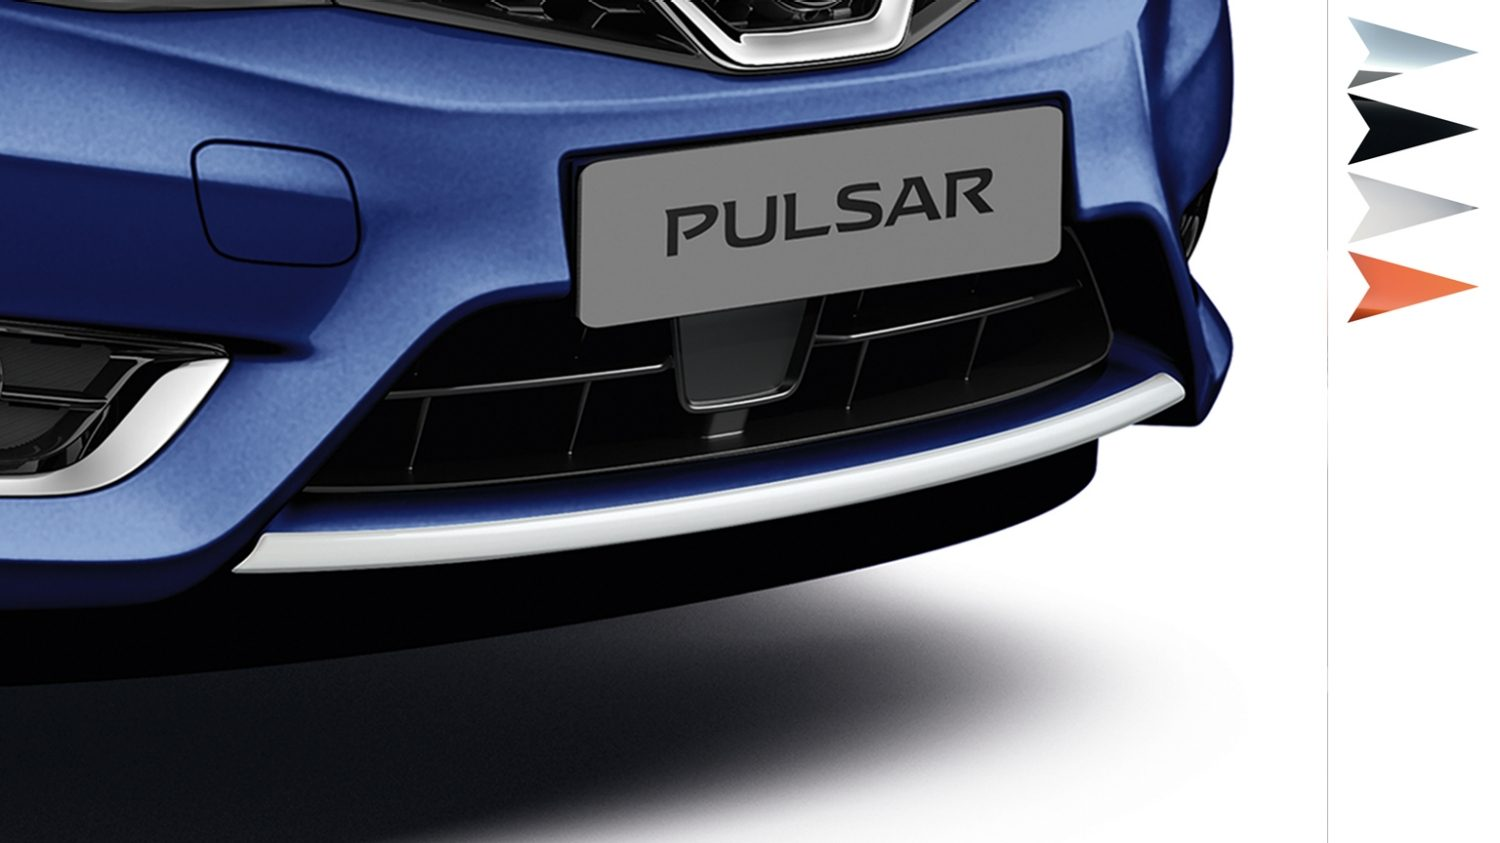 Nissan Pulsar hatchback - Front lip finisher london white